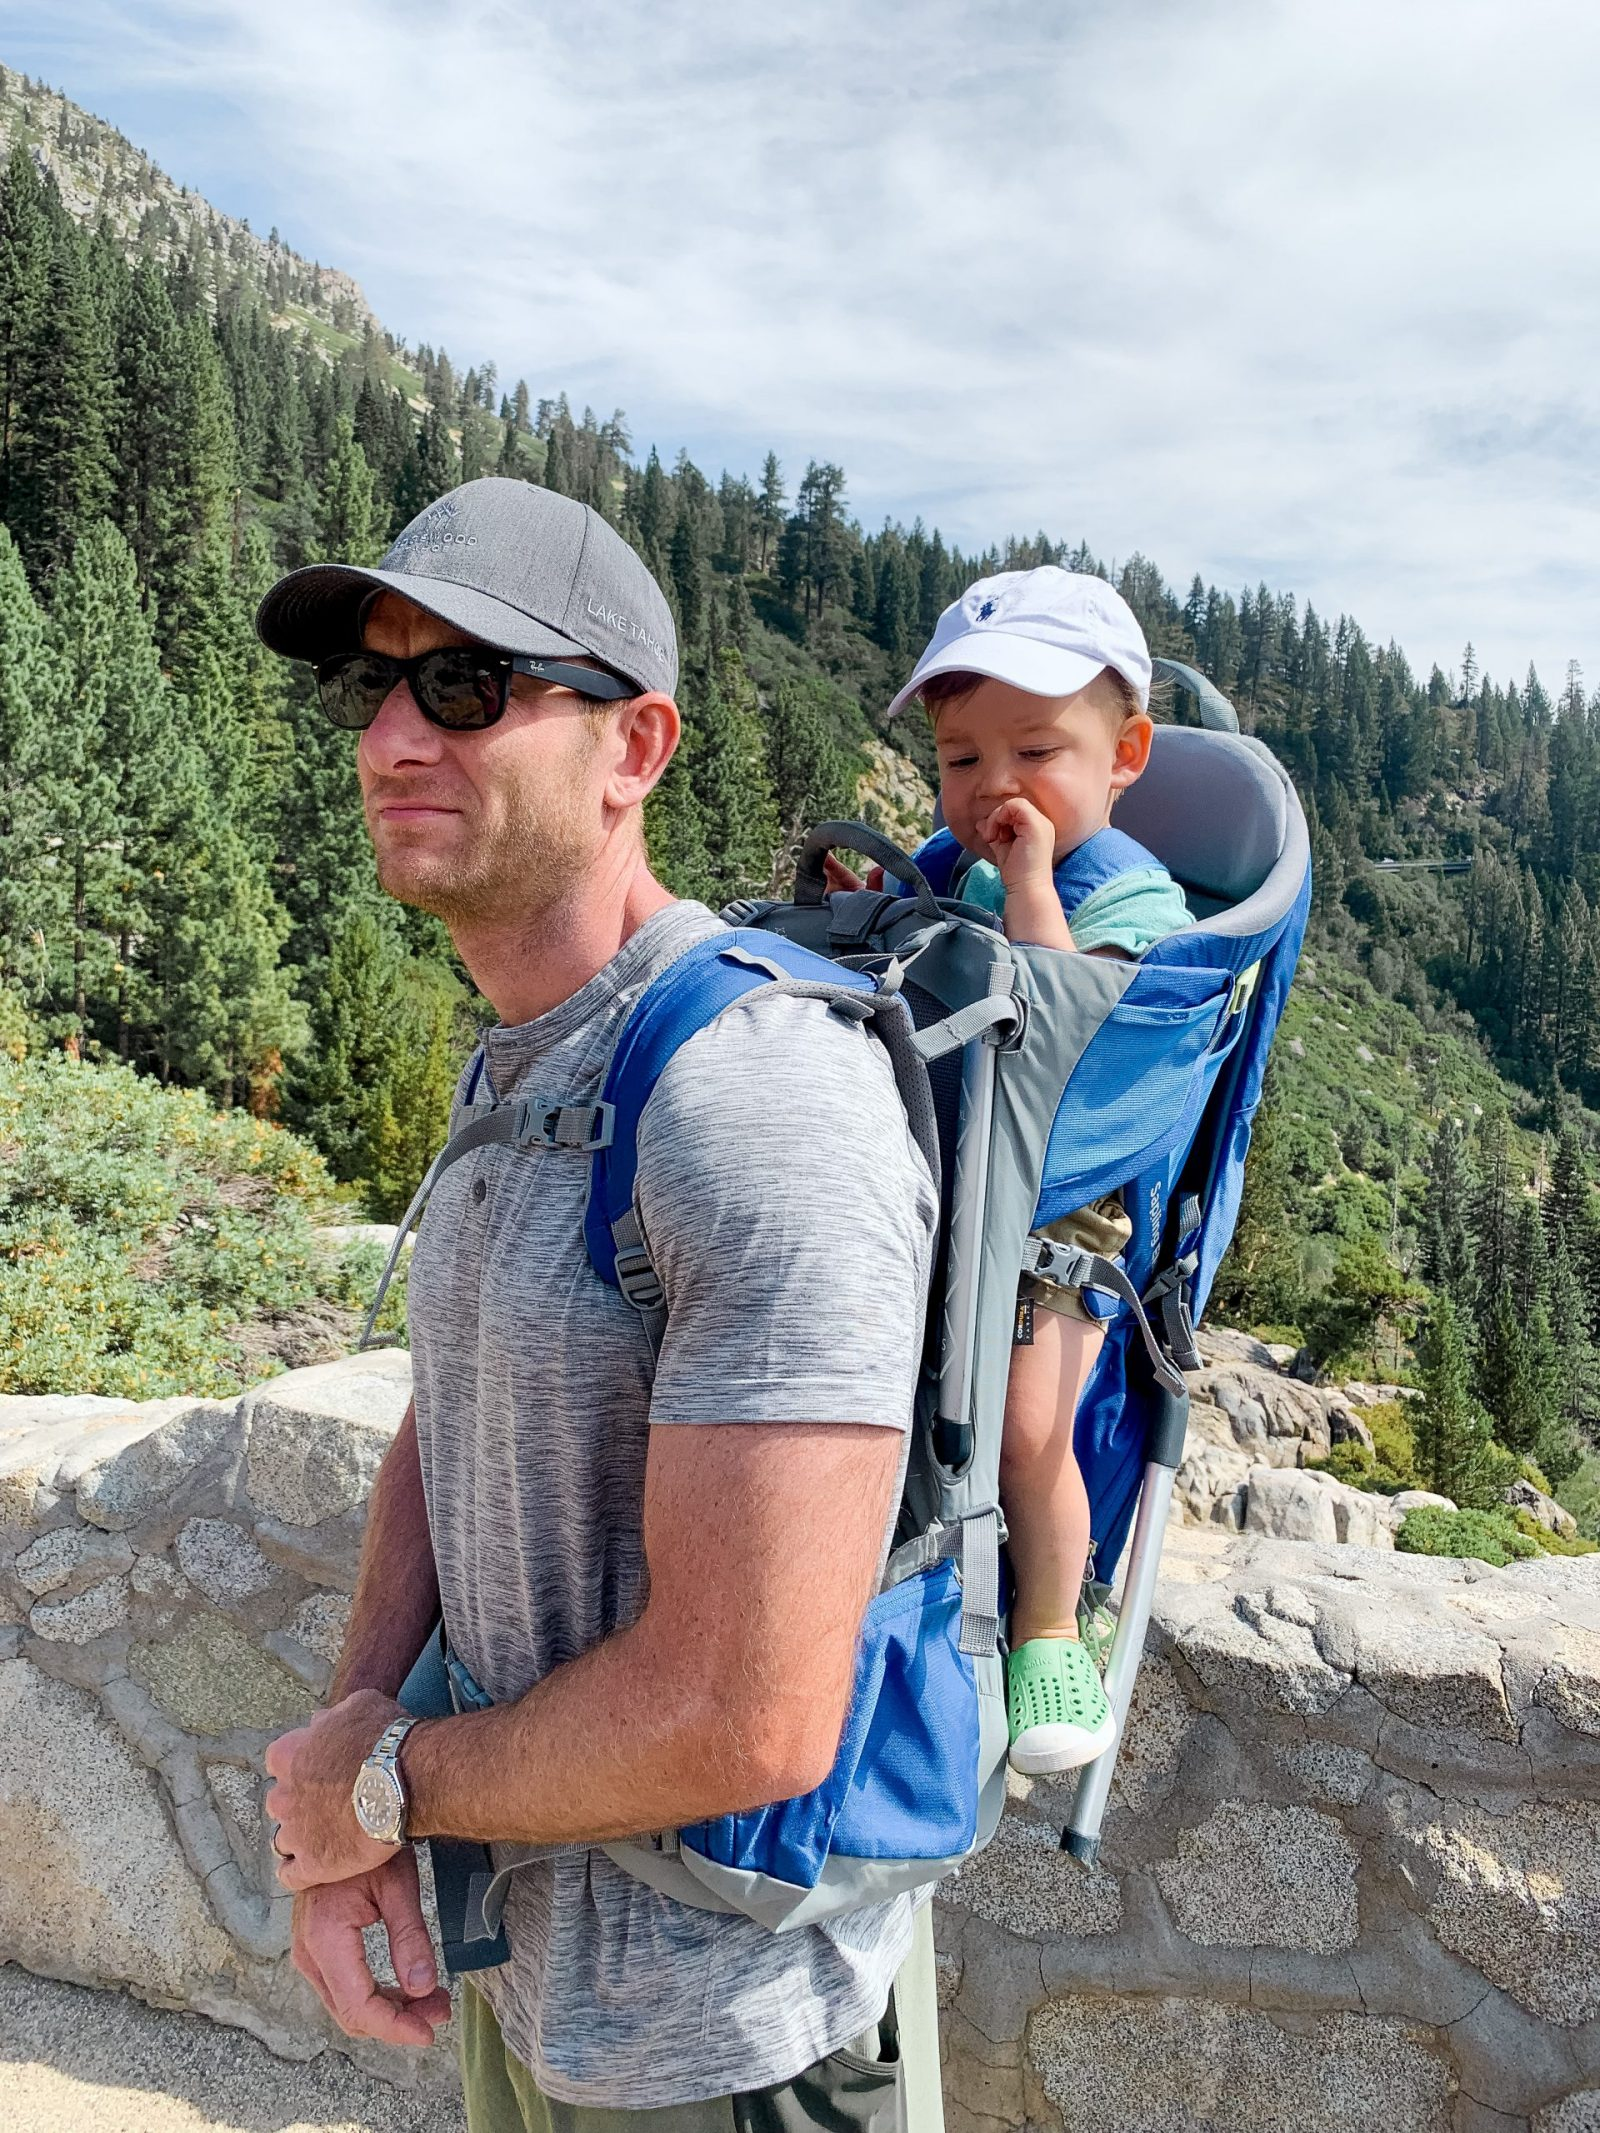 baby hiking carrier